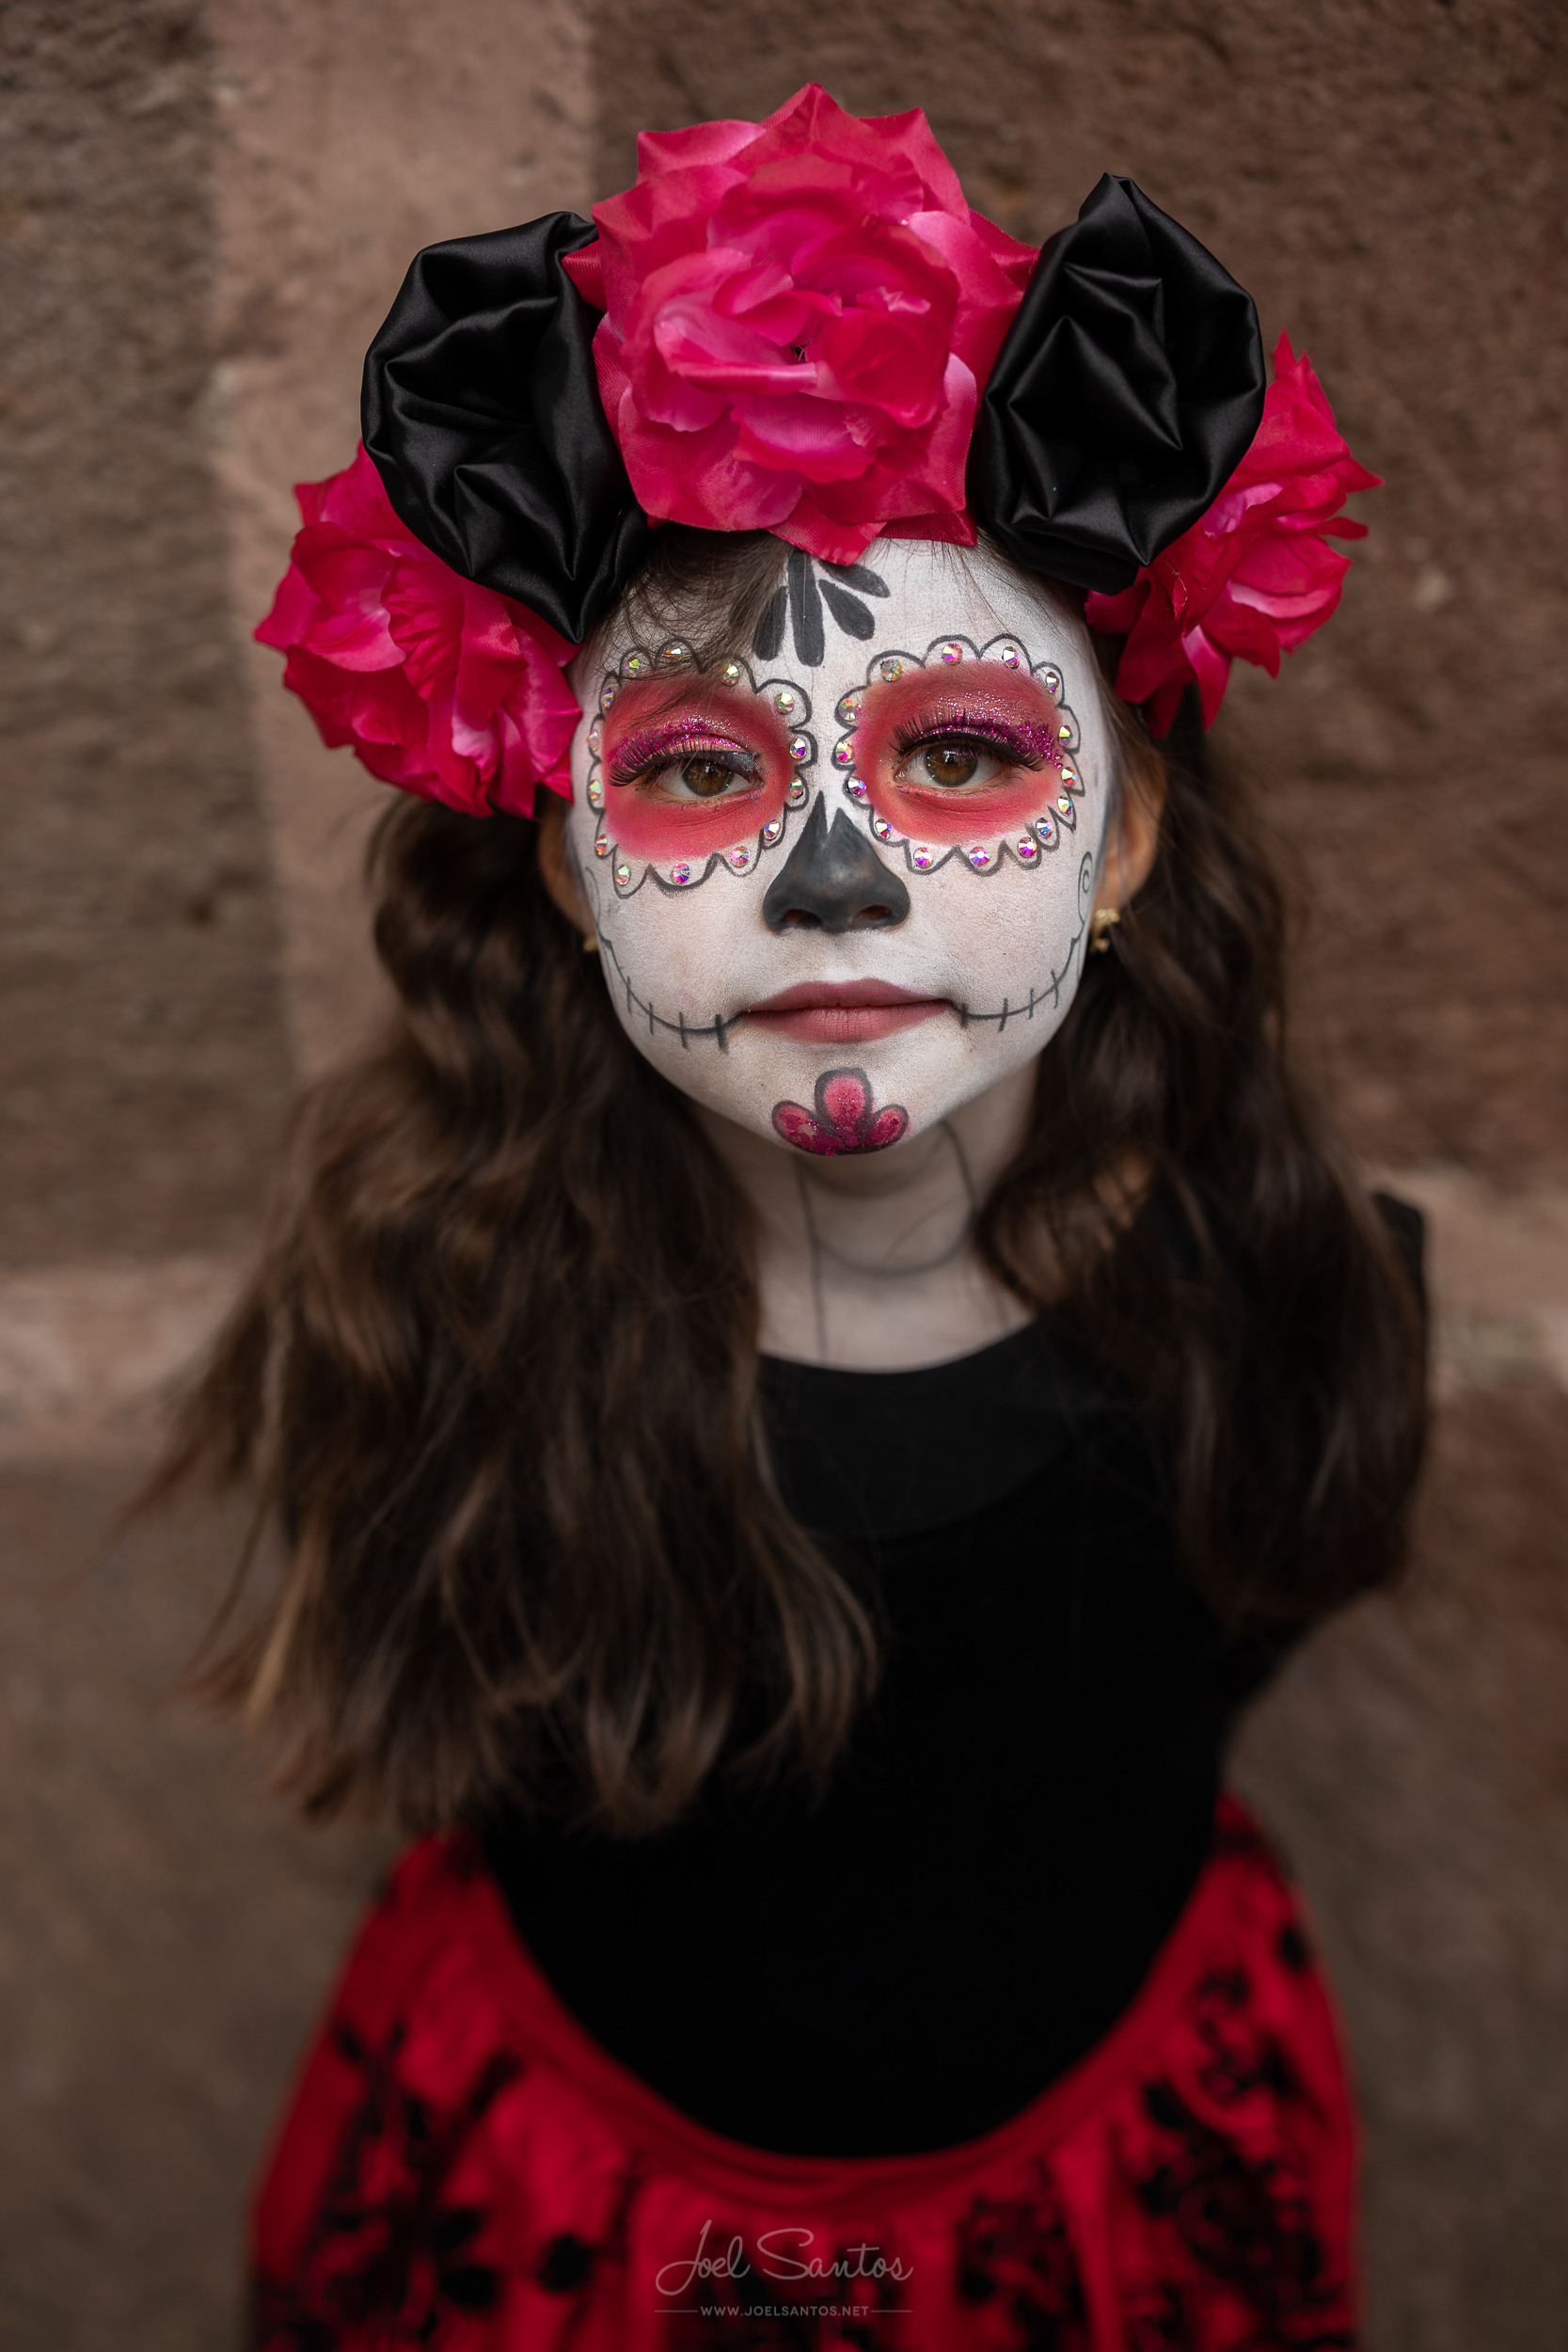 Girll at Day Of The Dead, Mexico